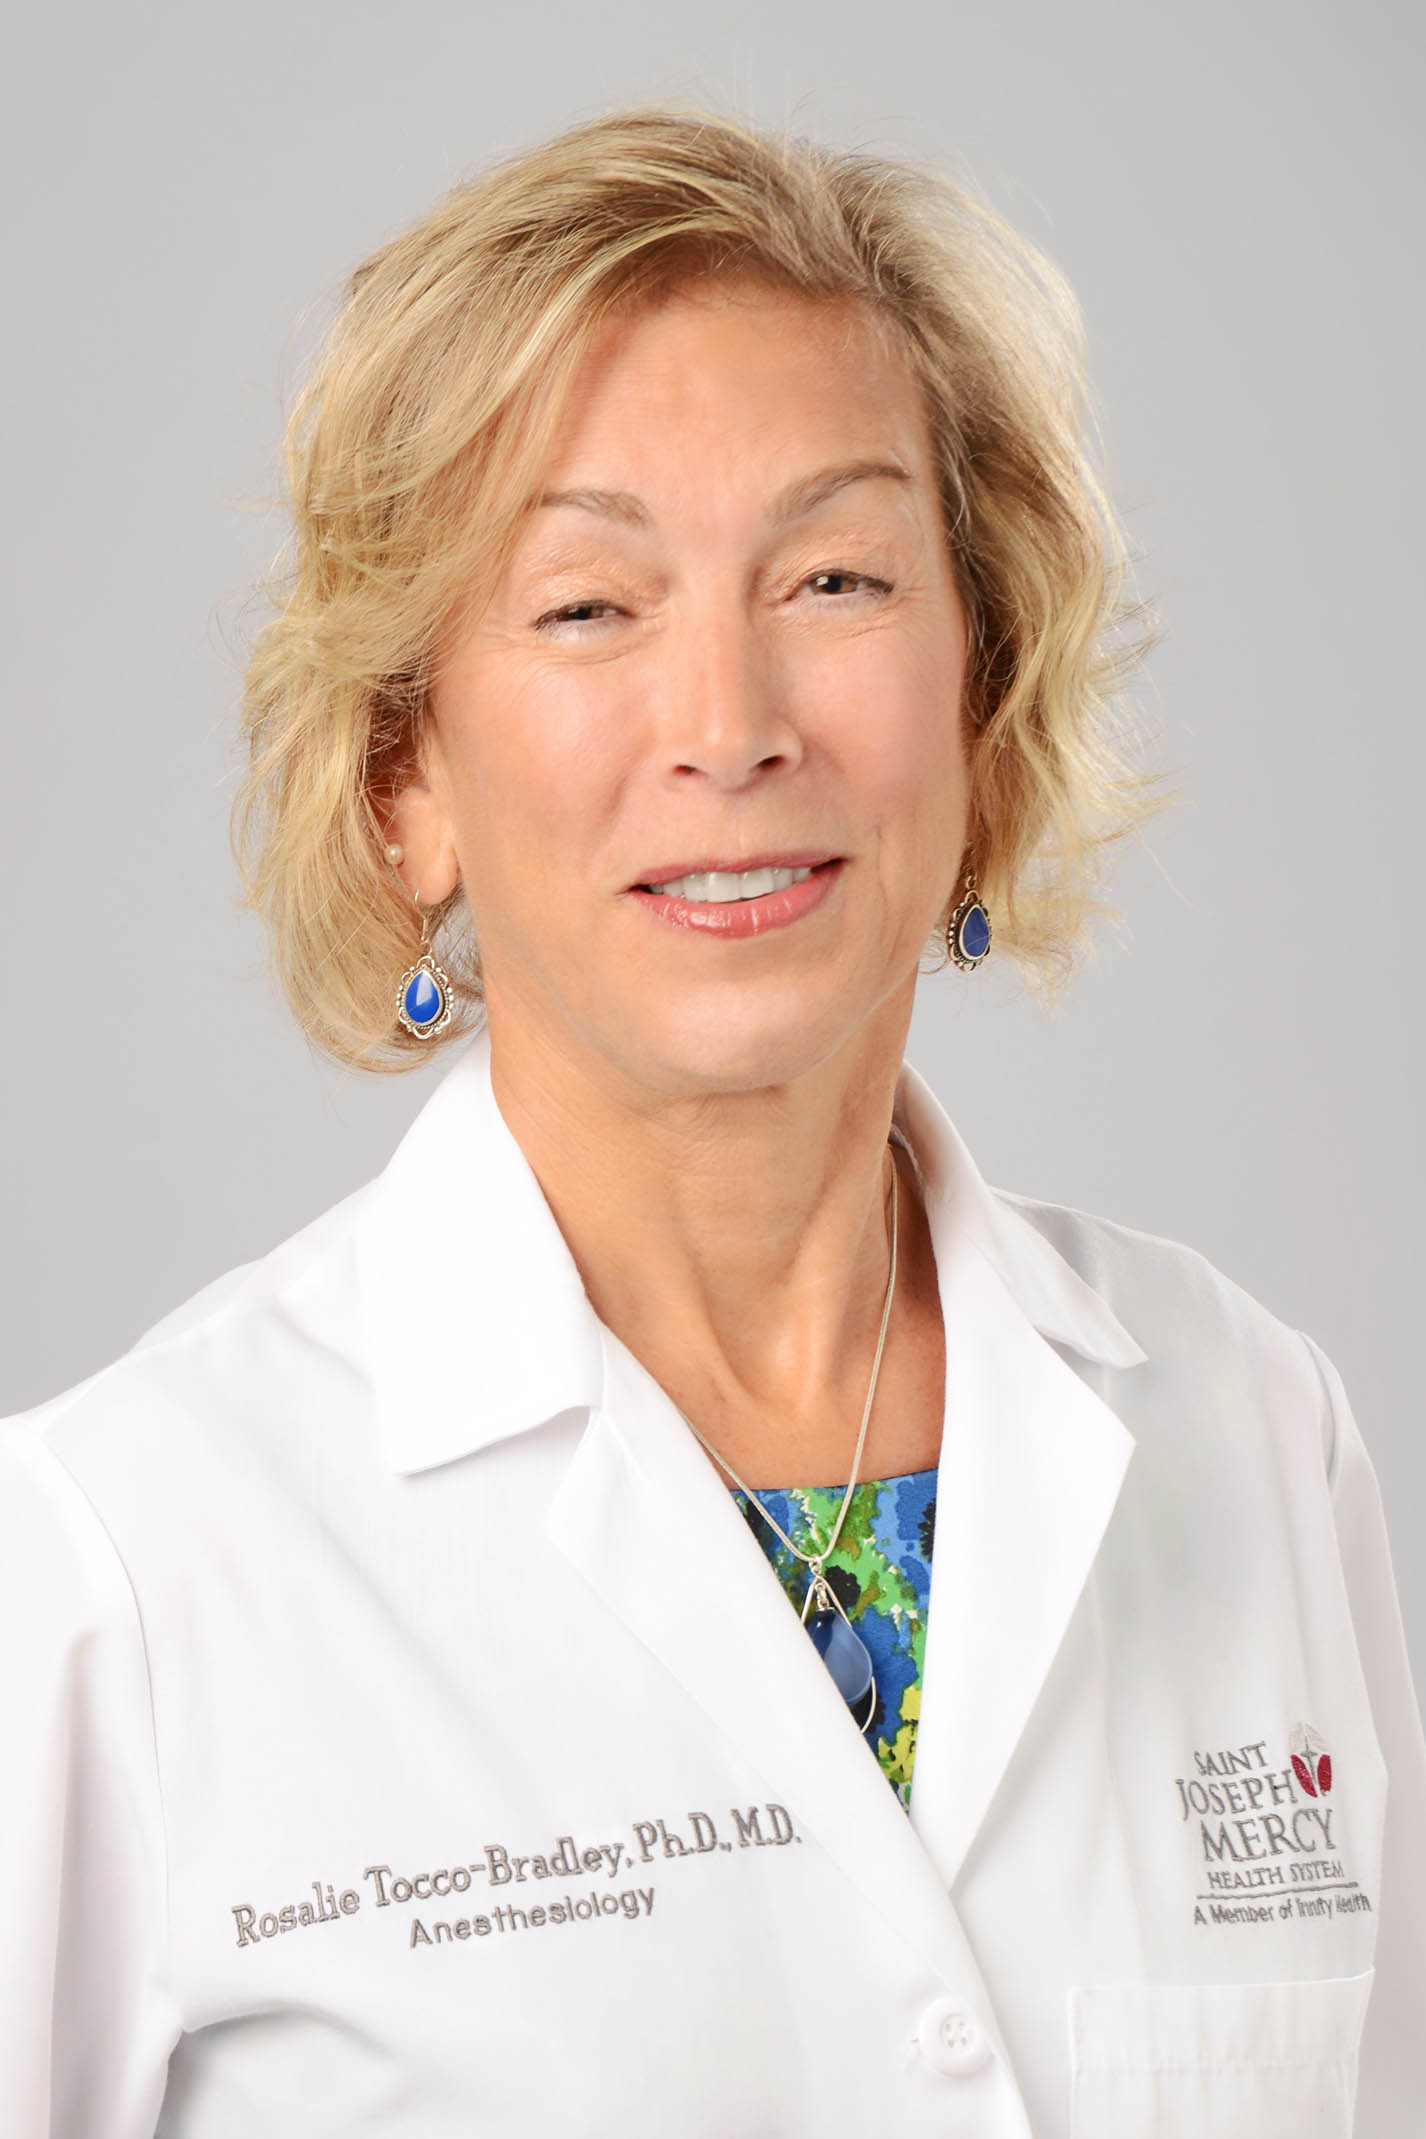 Rosalie Tocco Bradley named chief medical officer of St Joseph